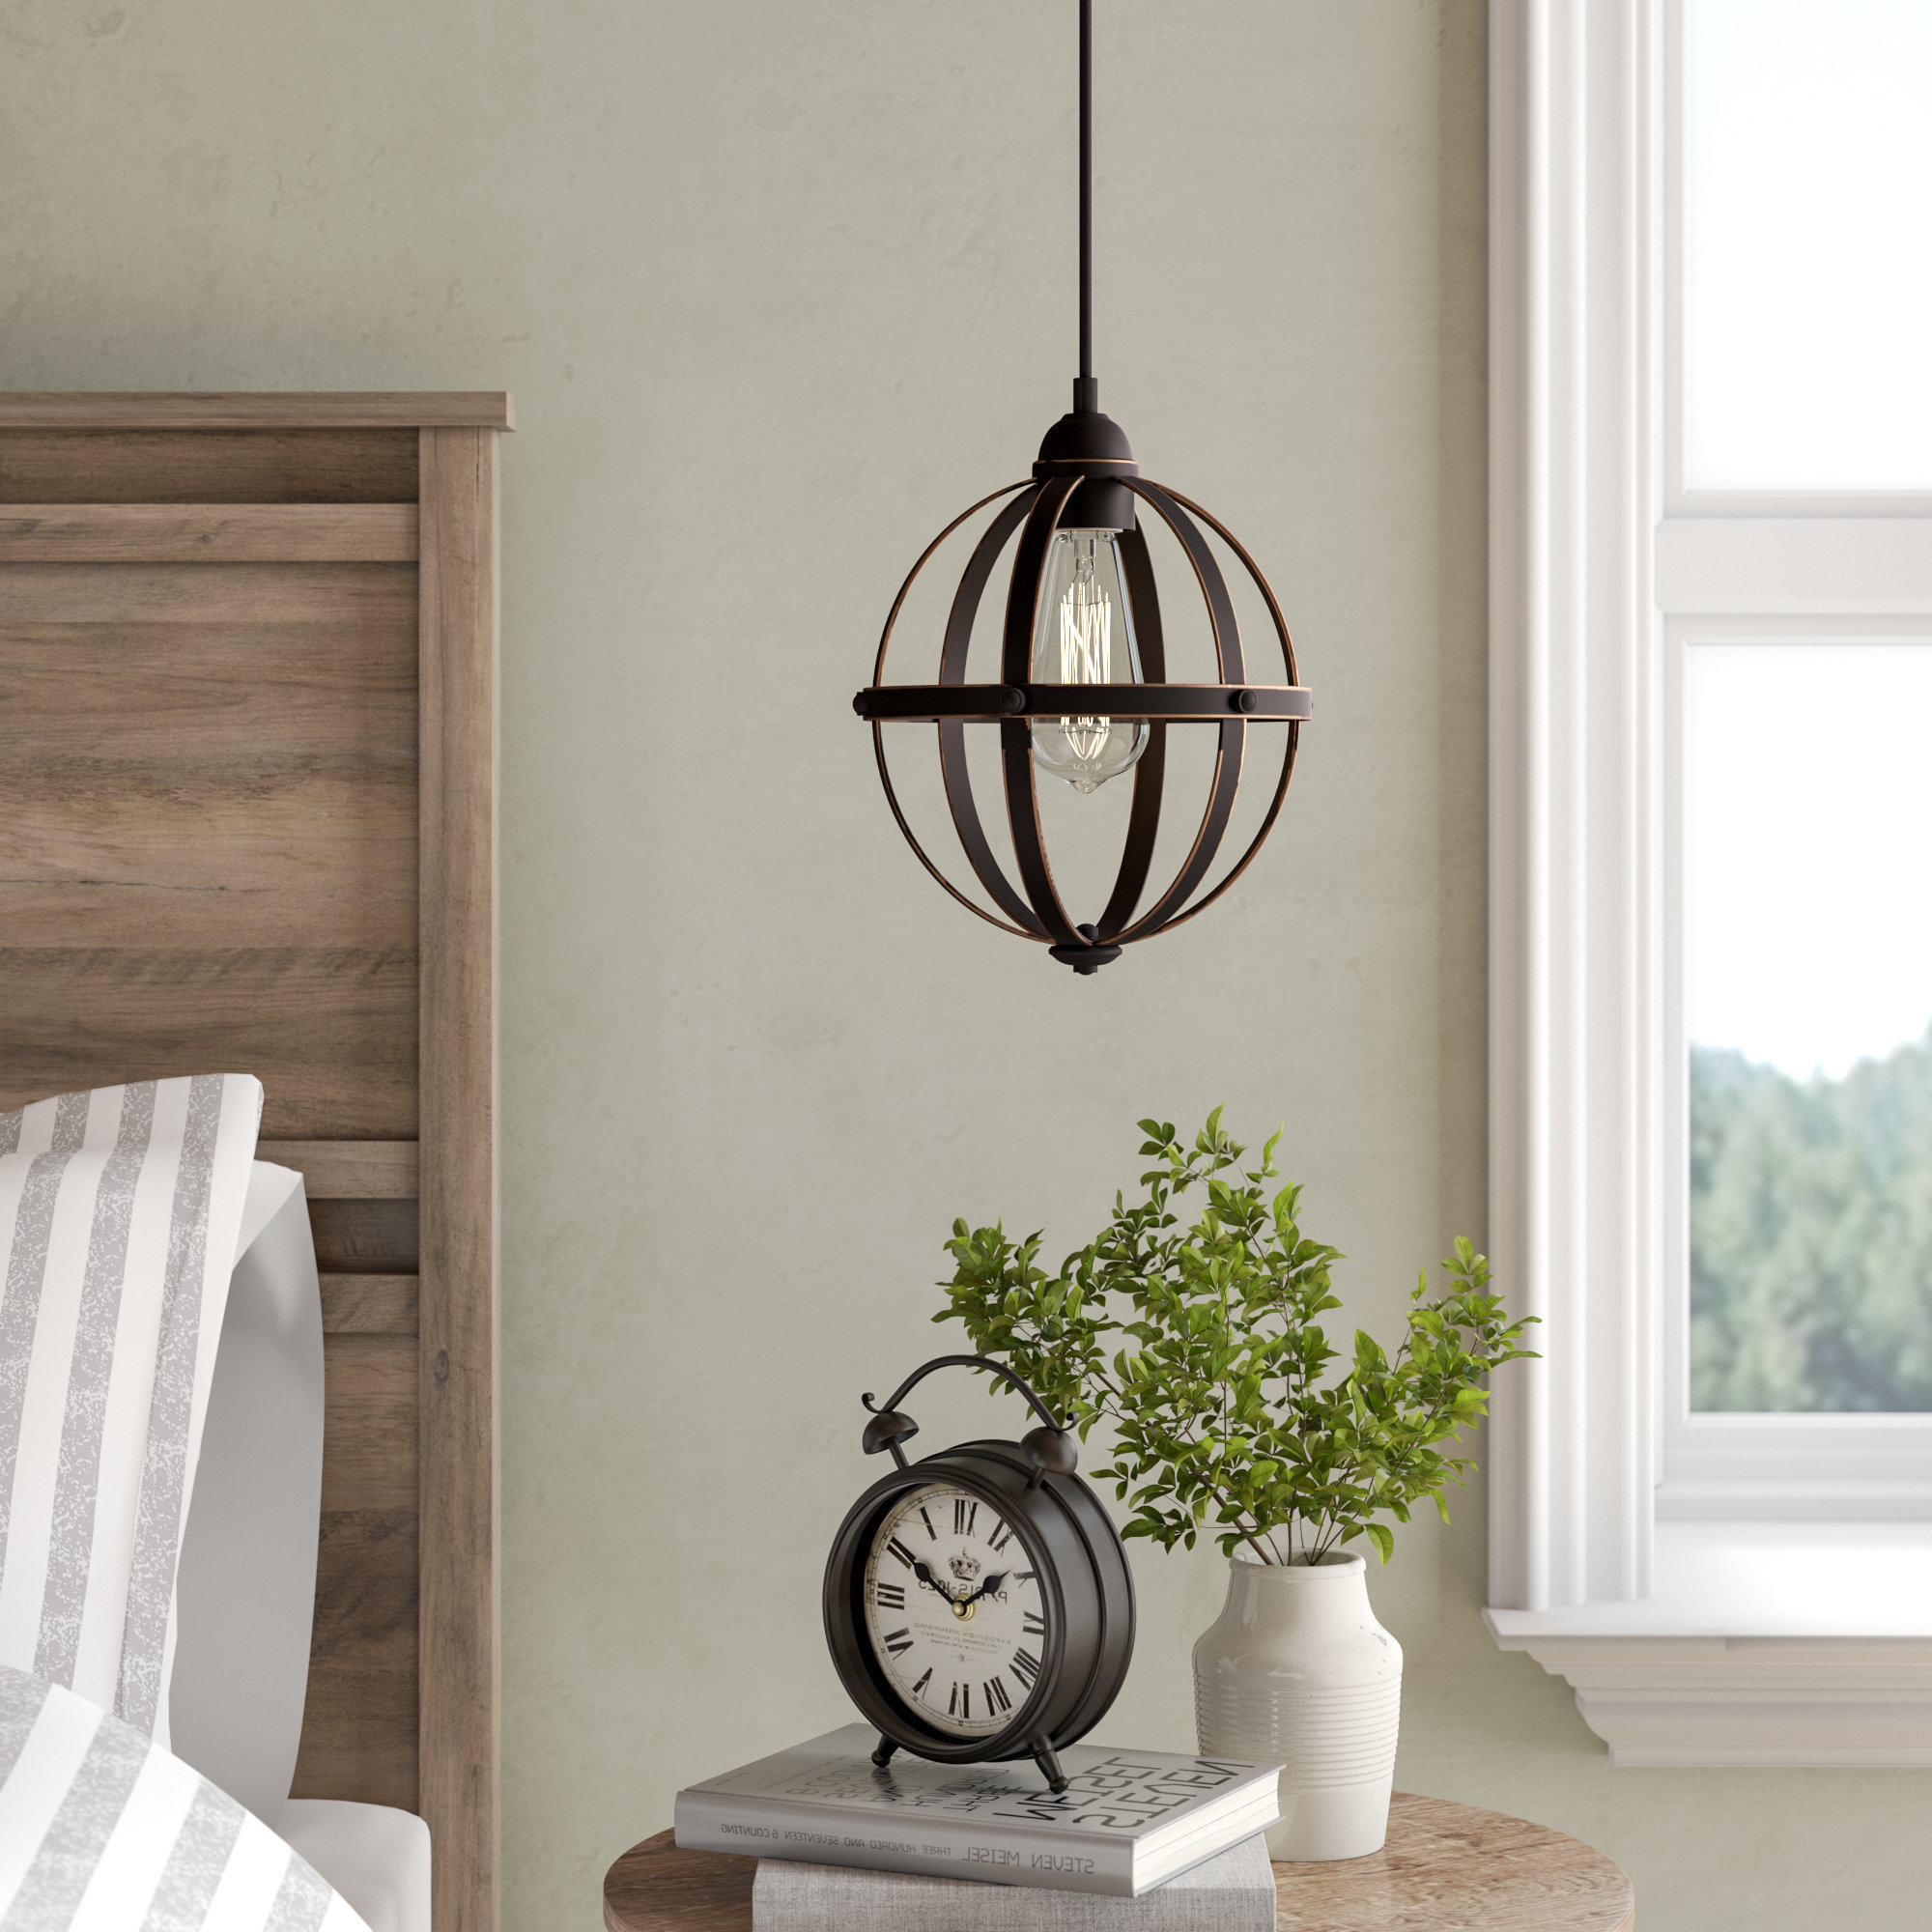 Prange 1 Light Single Globe Pendants Intended For Most Popular Genna 1 Light Single Globe Pendant (View 20 of 25)